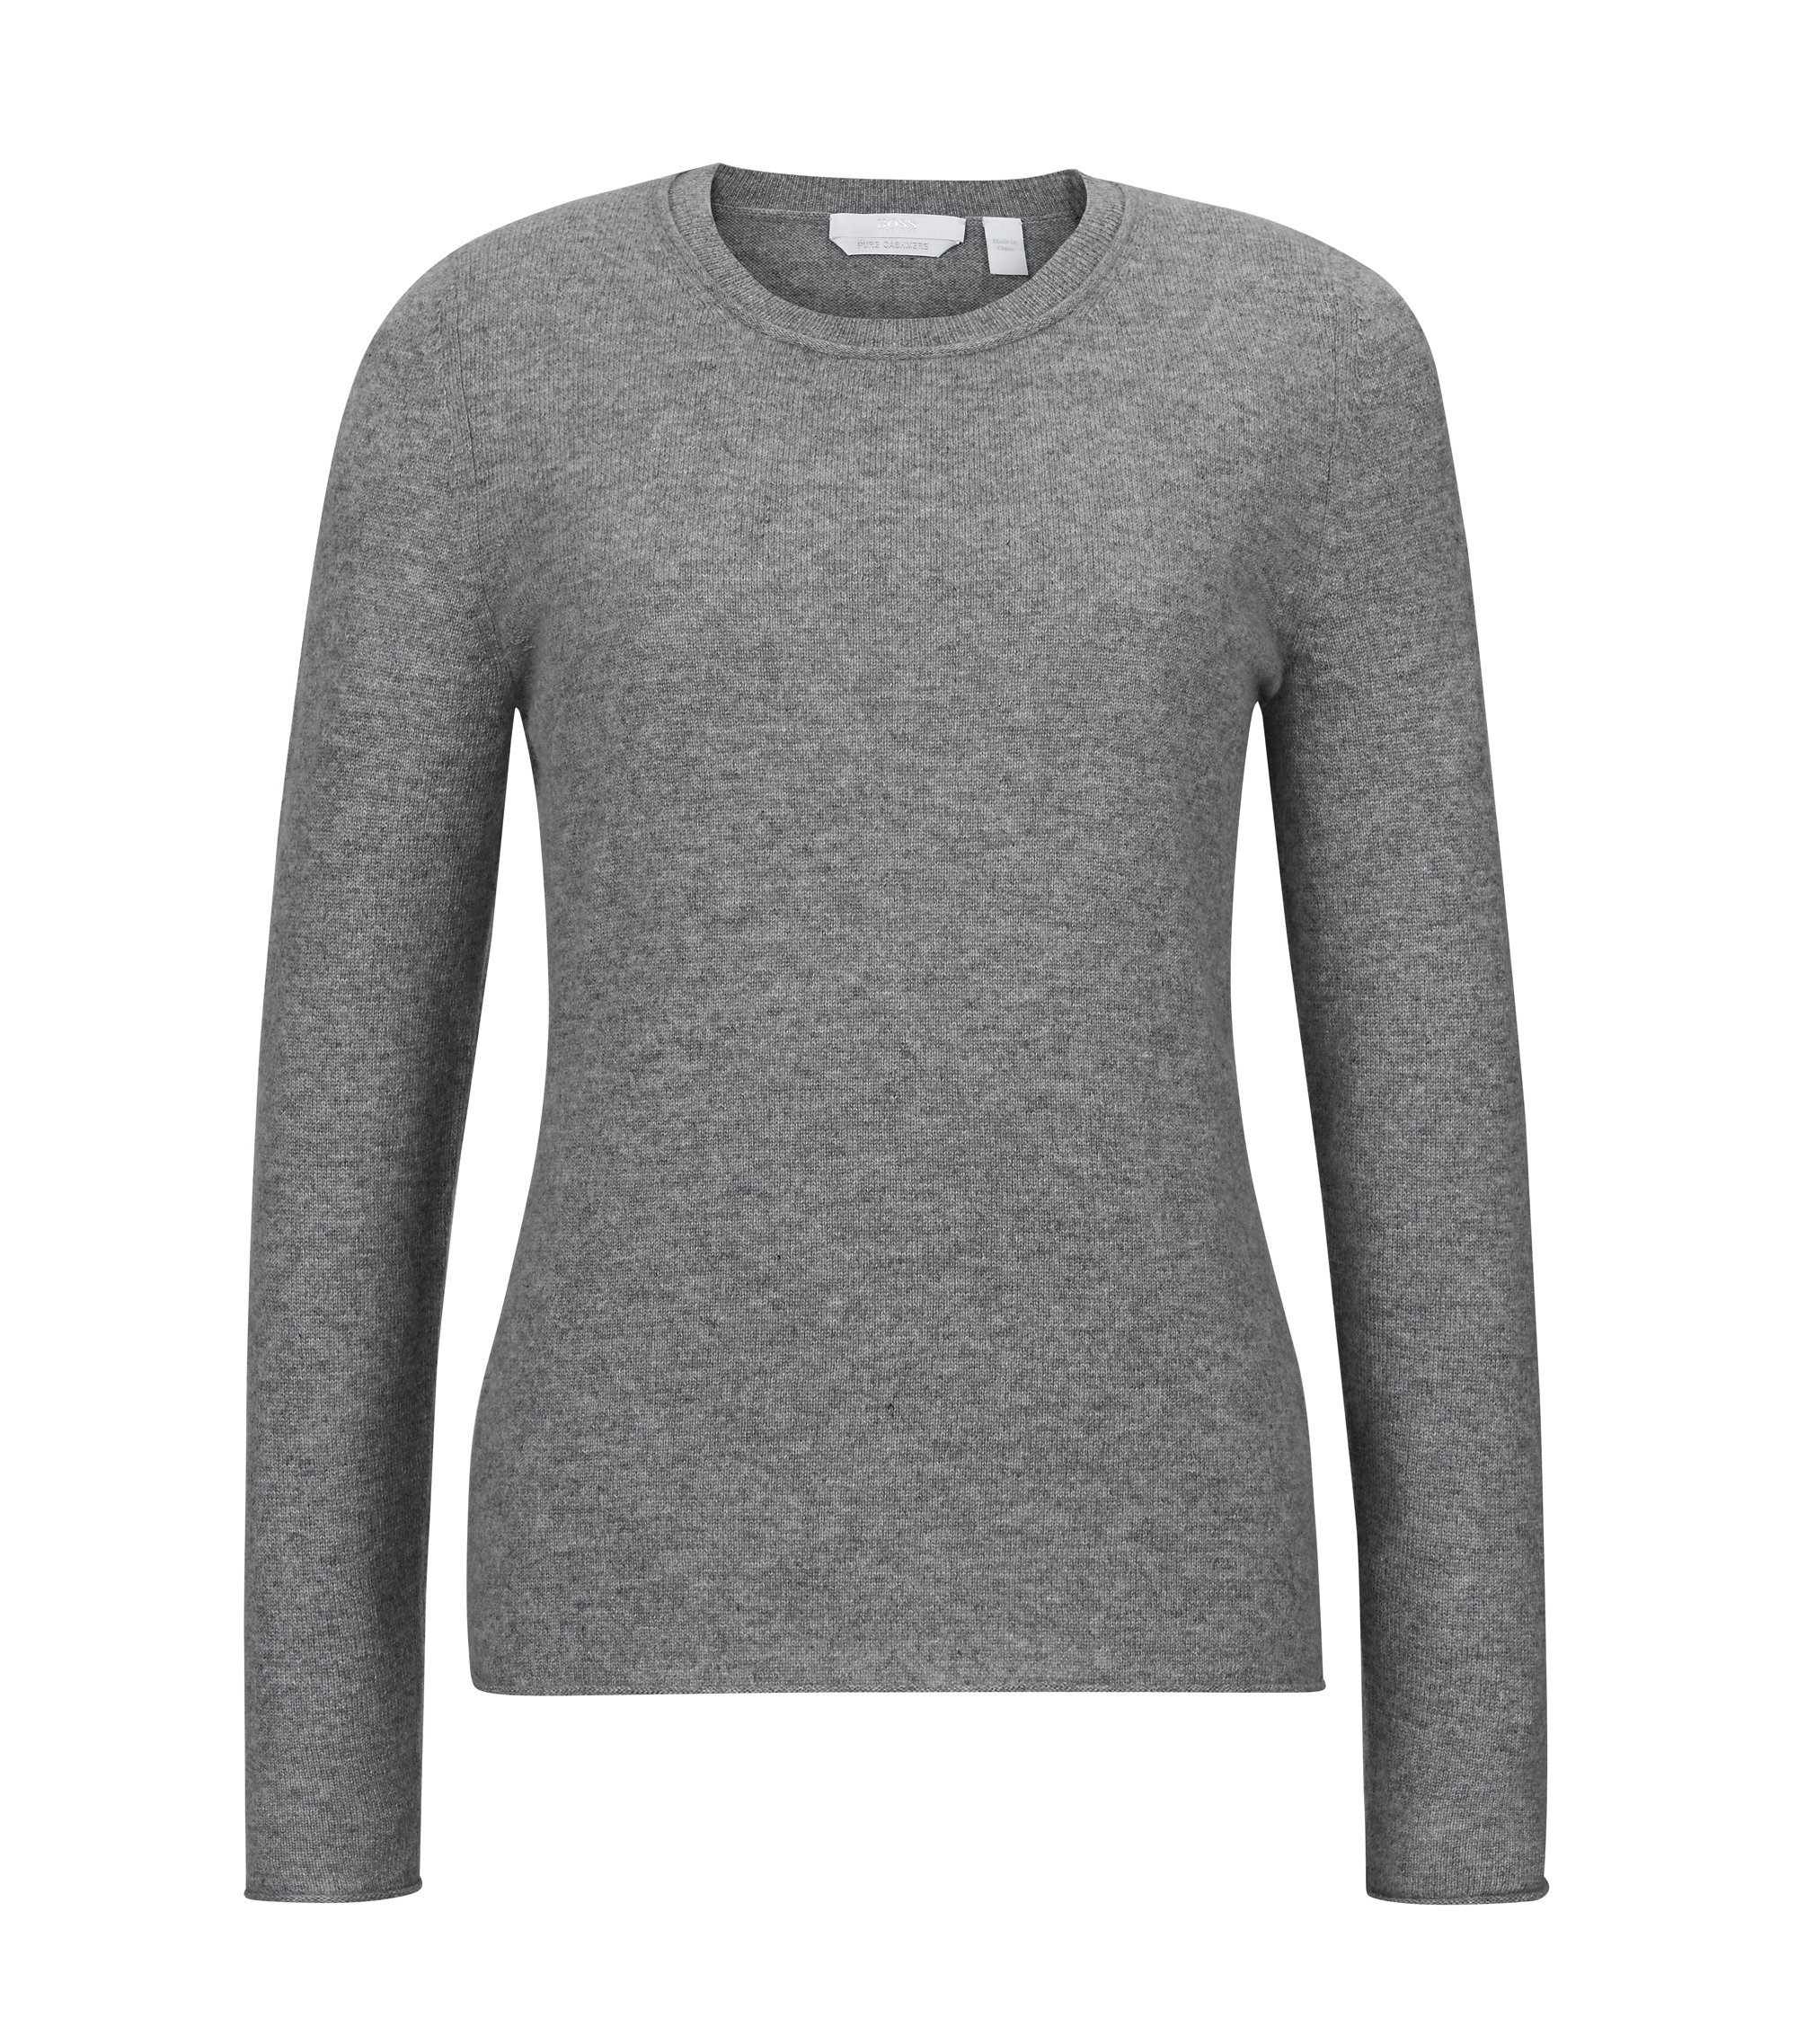 Cashmere Sweater | Faynee, Grey